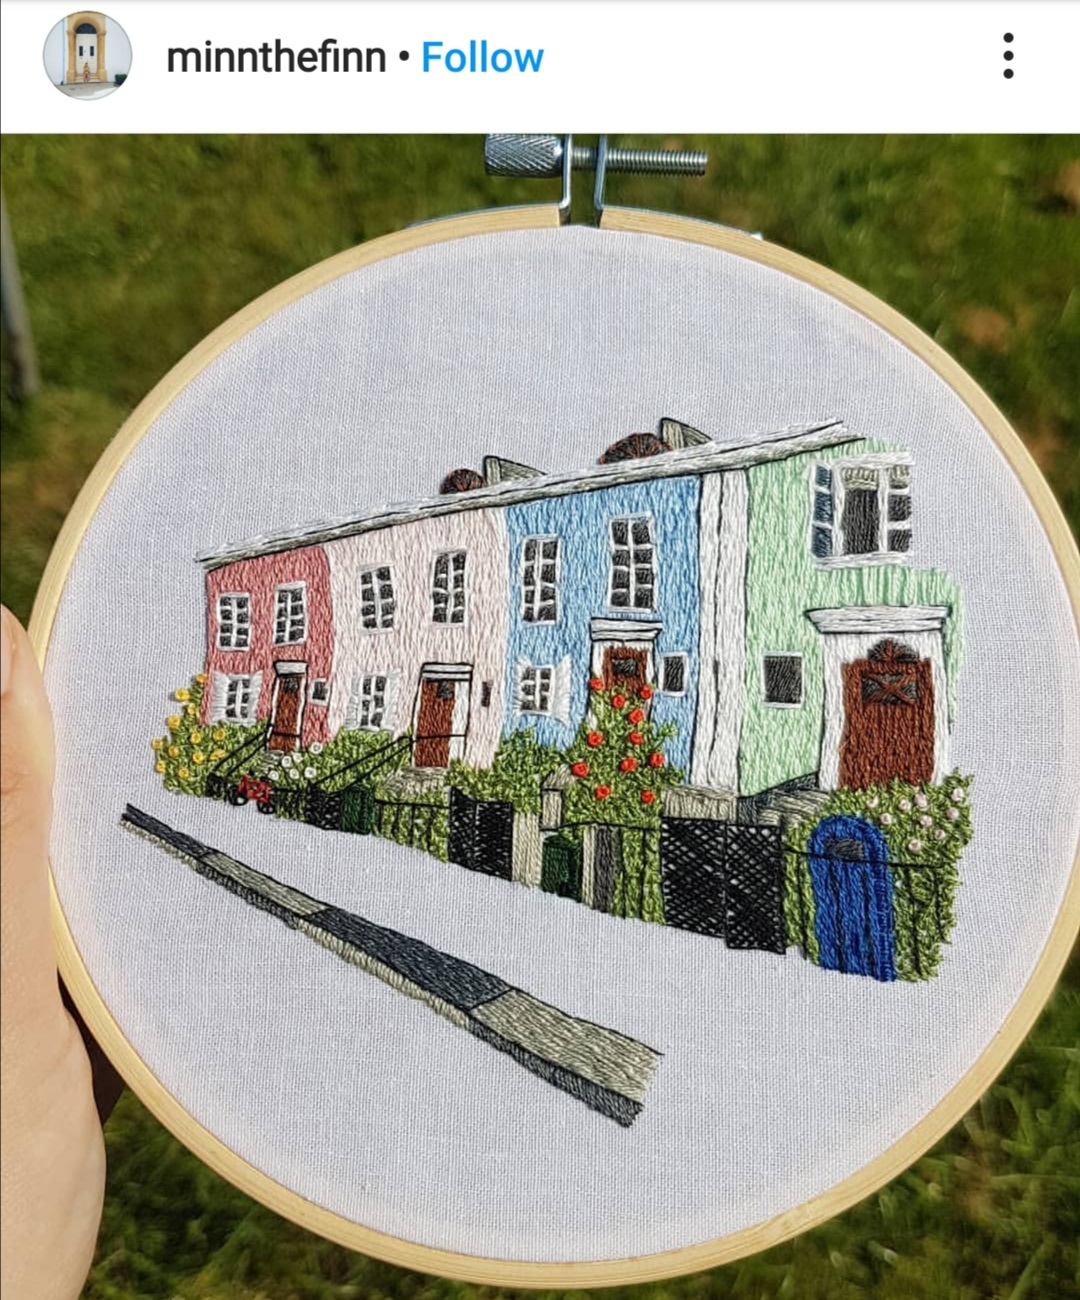 Embroidered Göteborg pattern by student of Charles and Elin